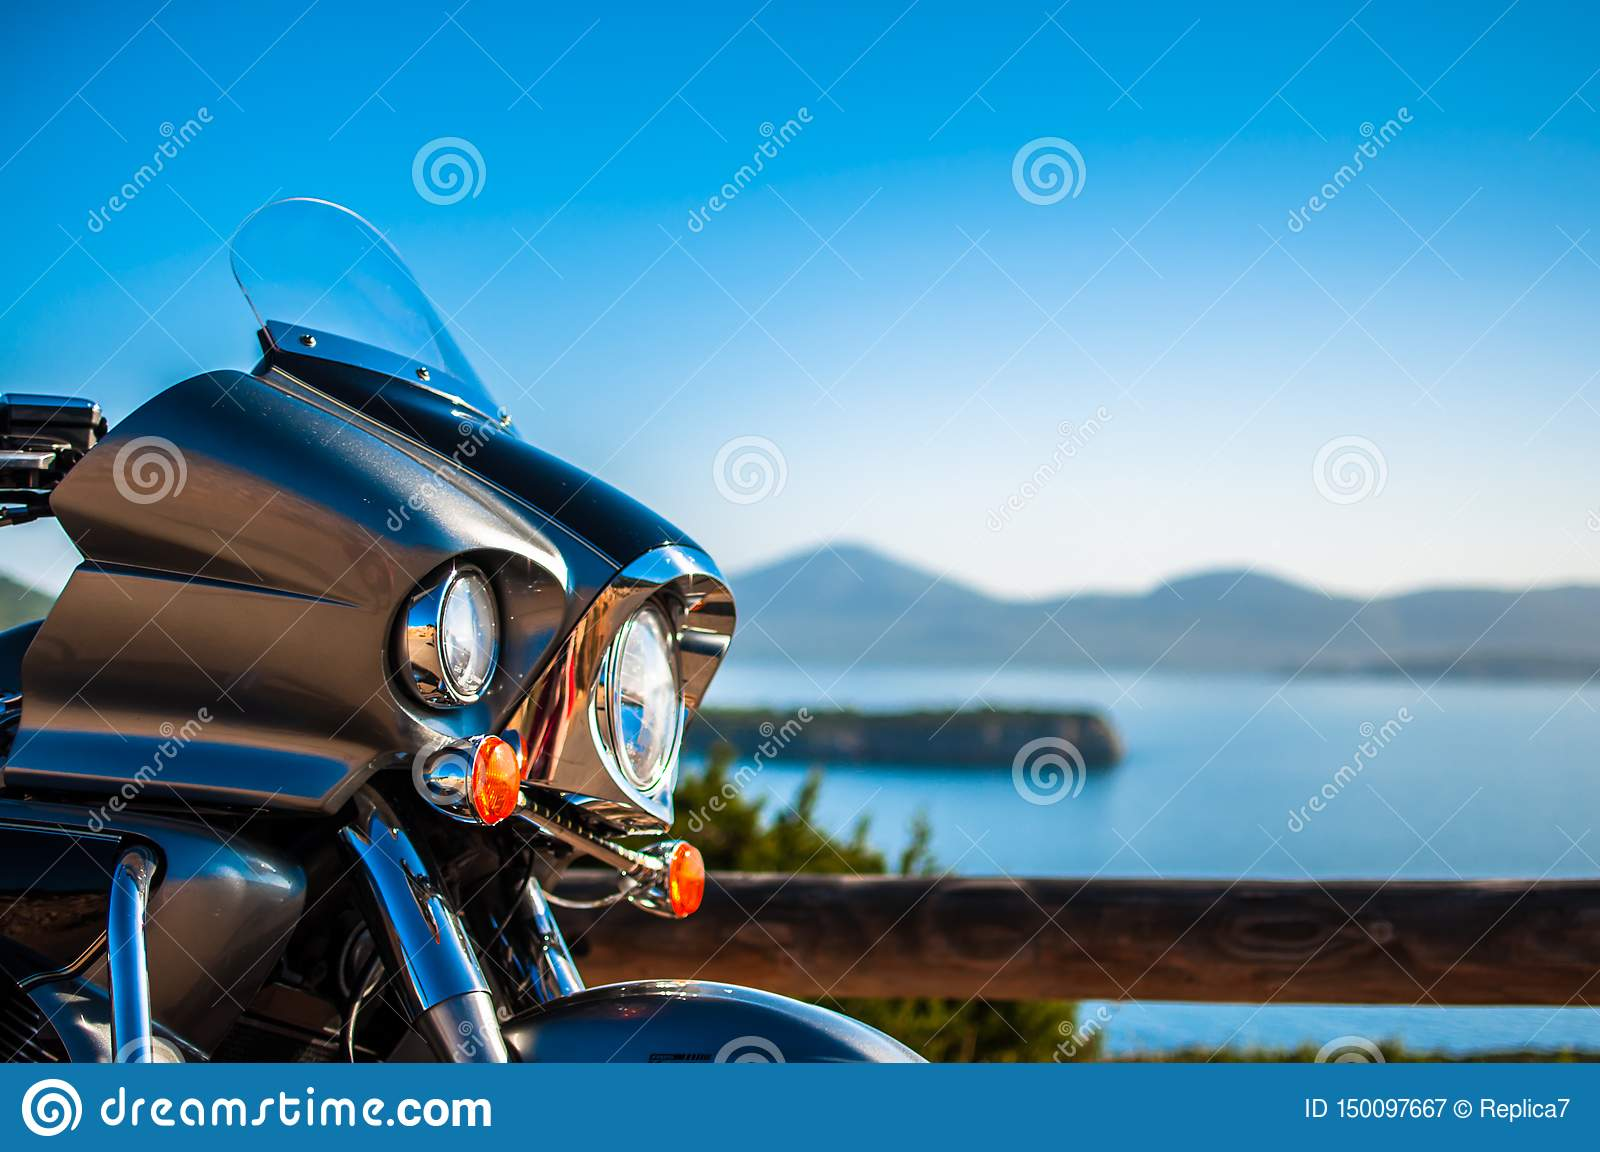 Landscape with a motorcycle on the coast